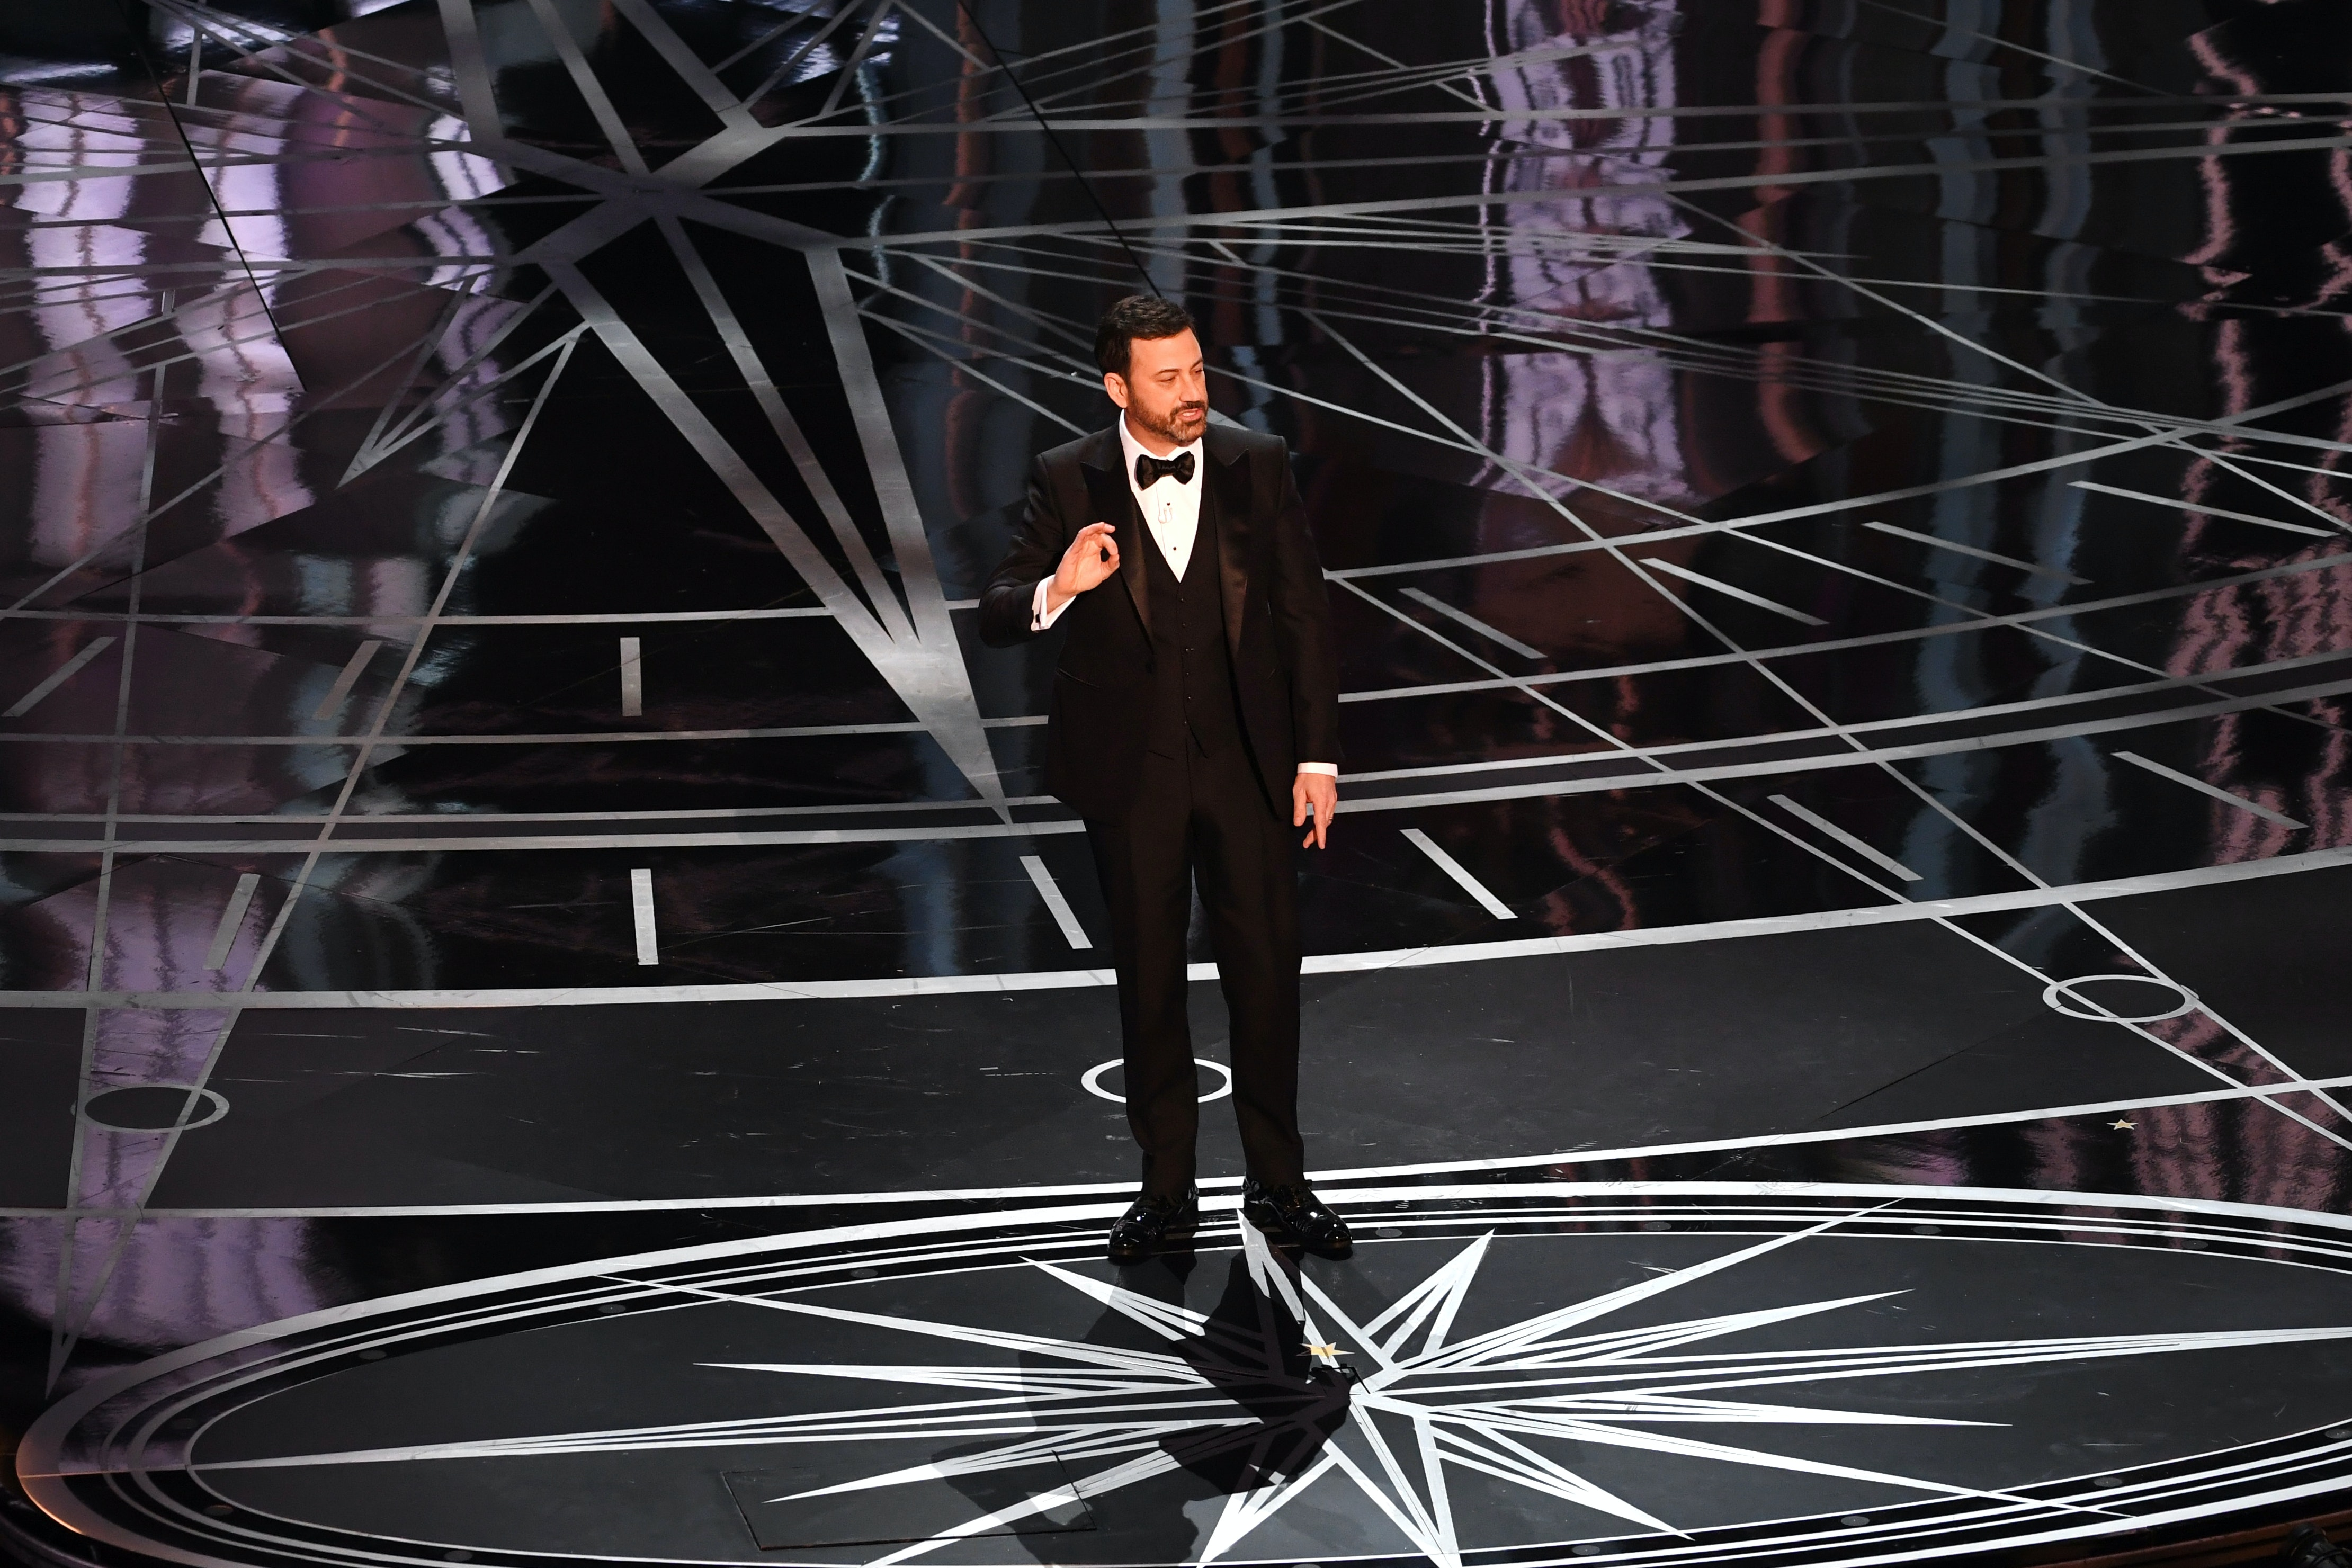 Jimmy Kimmel Roasts Matt Damon at the Oscars